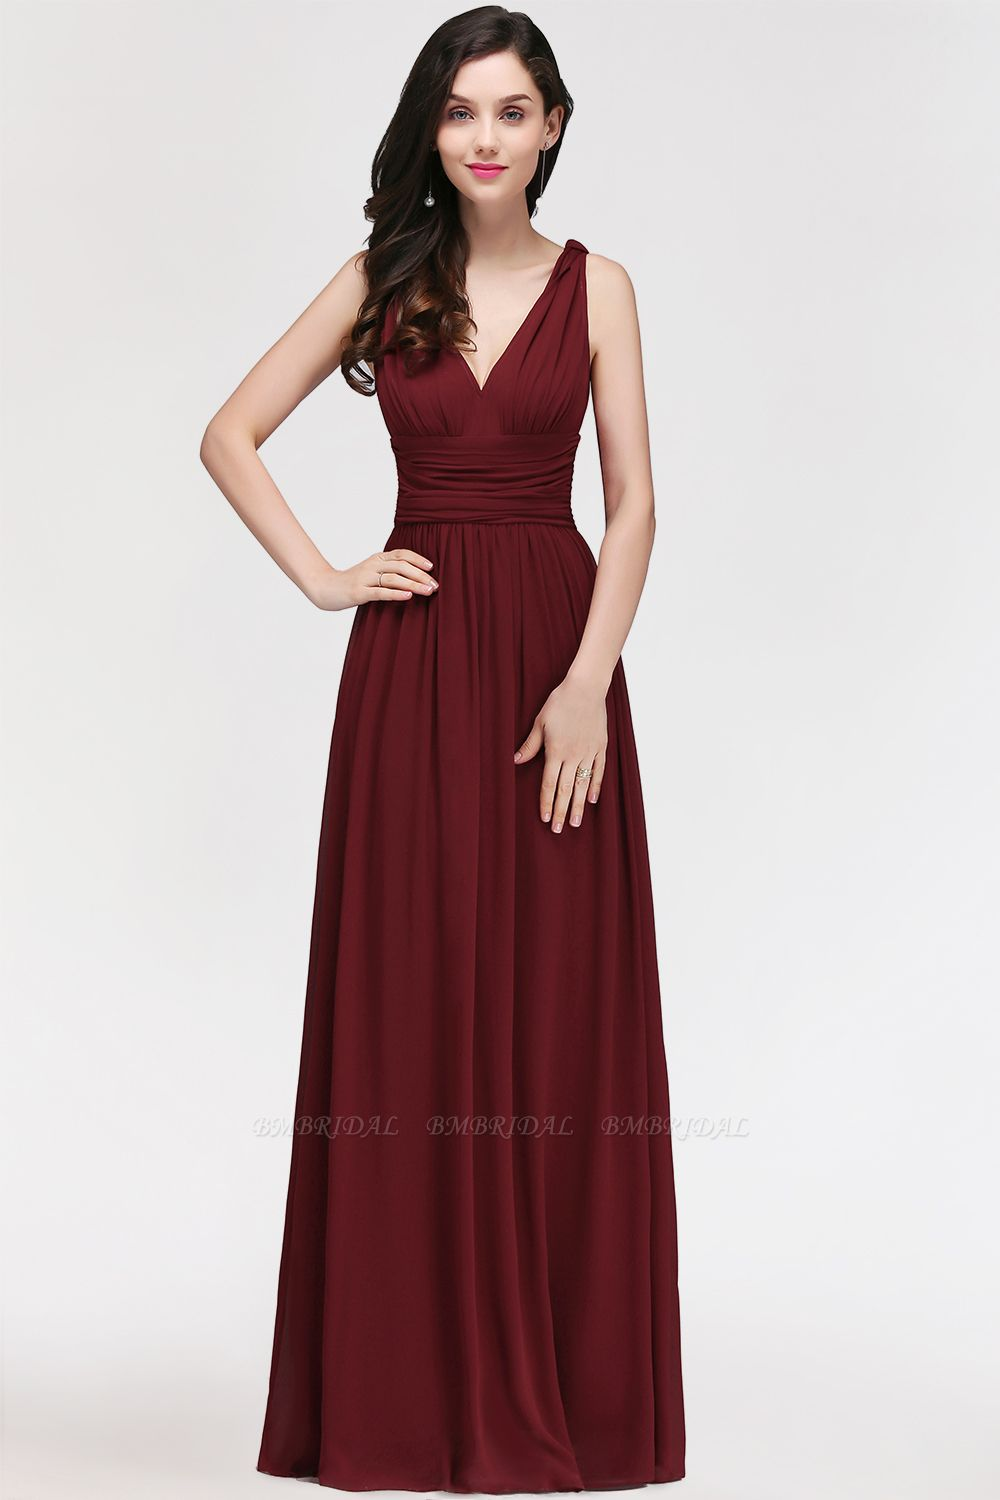 BMbridal Burgundy Long V-Neck Sleeveless Chiffon Bridesmaid Dress Online